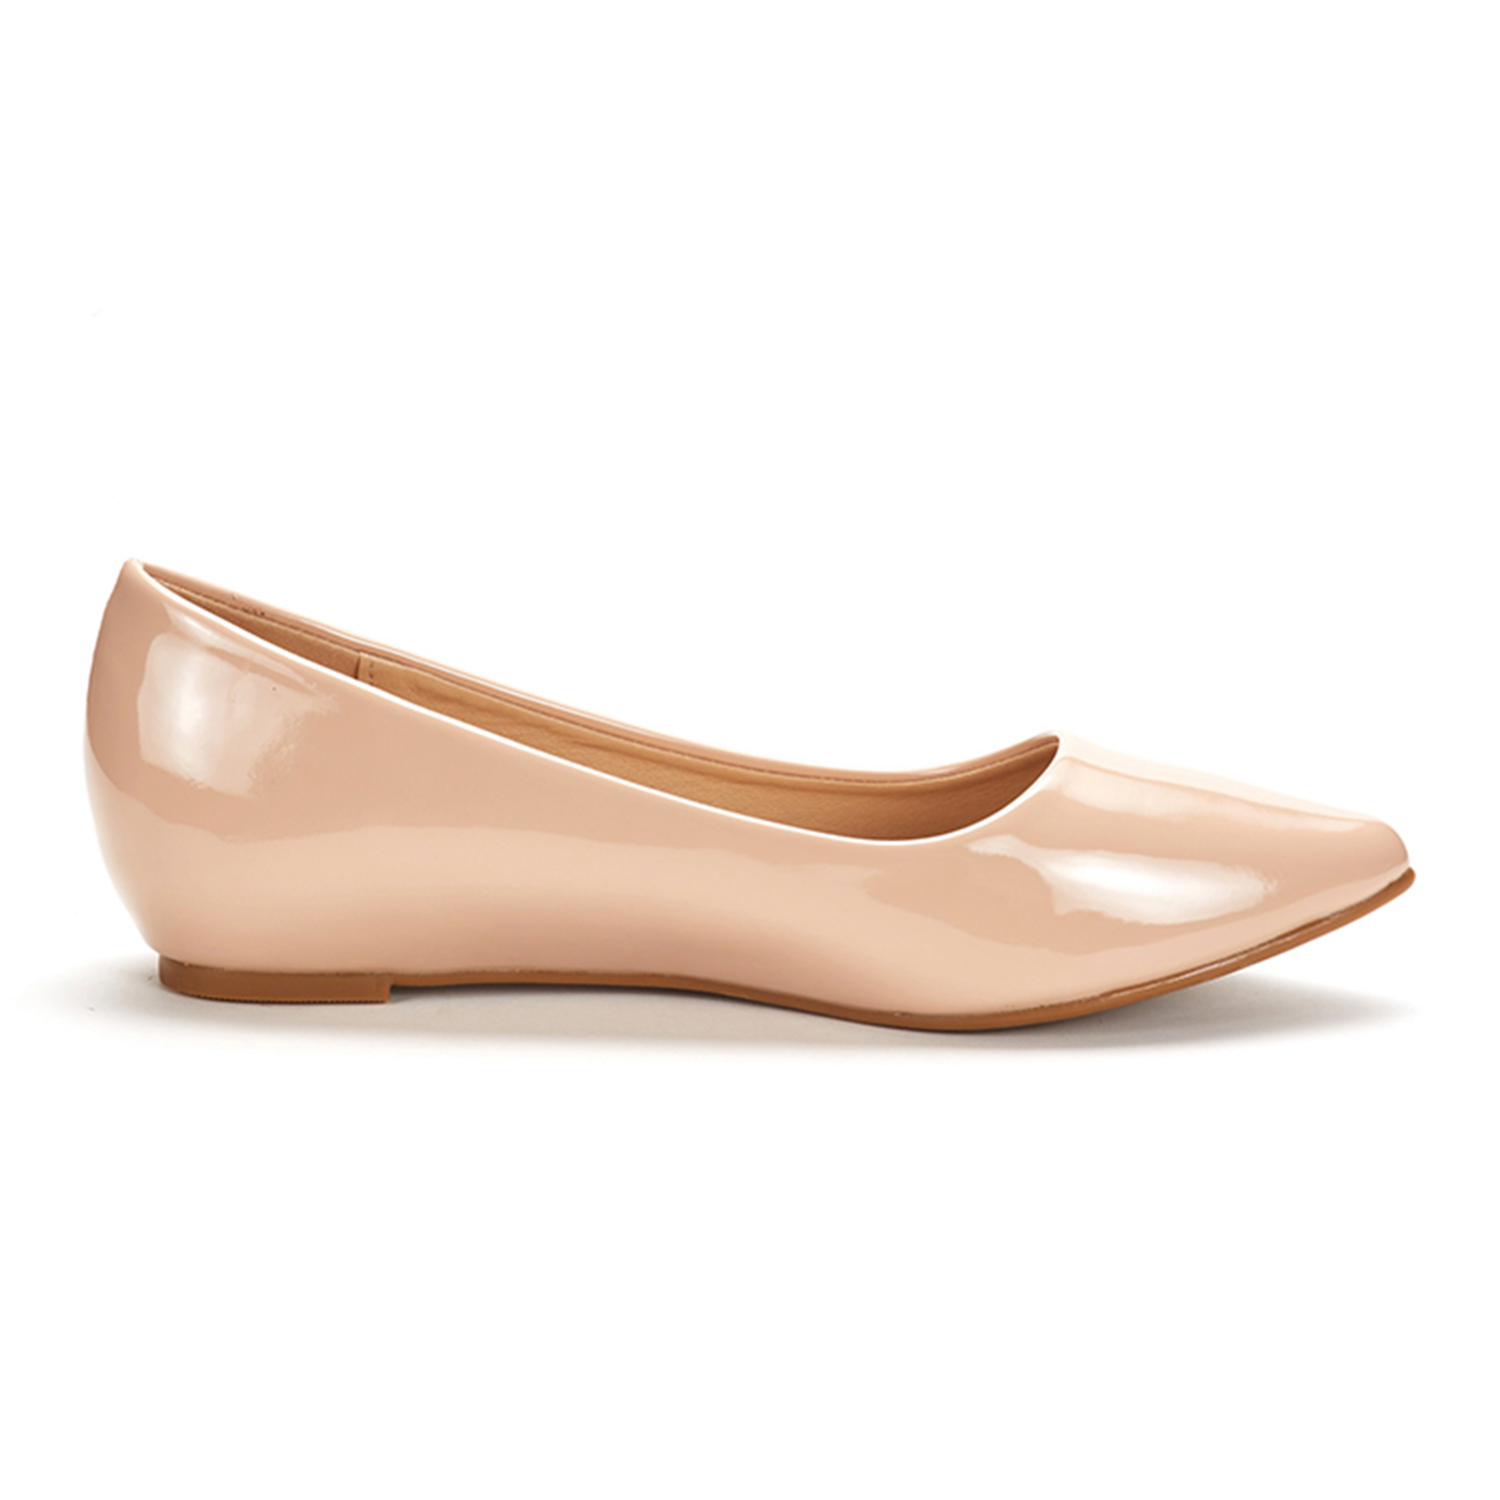 DREAM-PAIRS-Women-Low-Wedge-Flats-Ladies-Pointed-Toe-Slip-On-Comfort-Flat-Shoes thumbnail 92